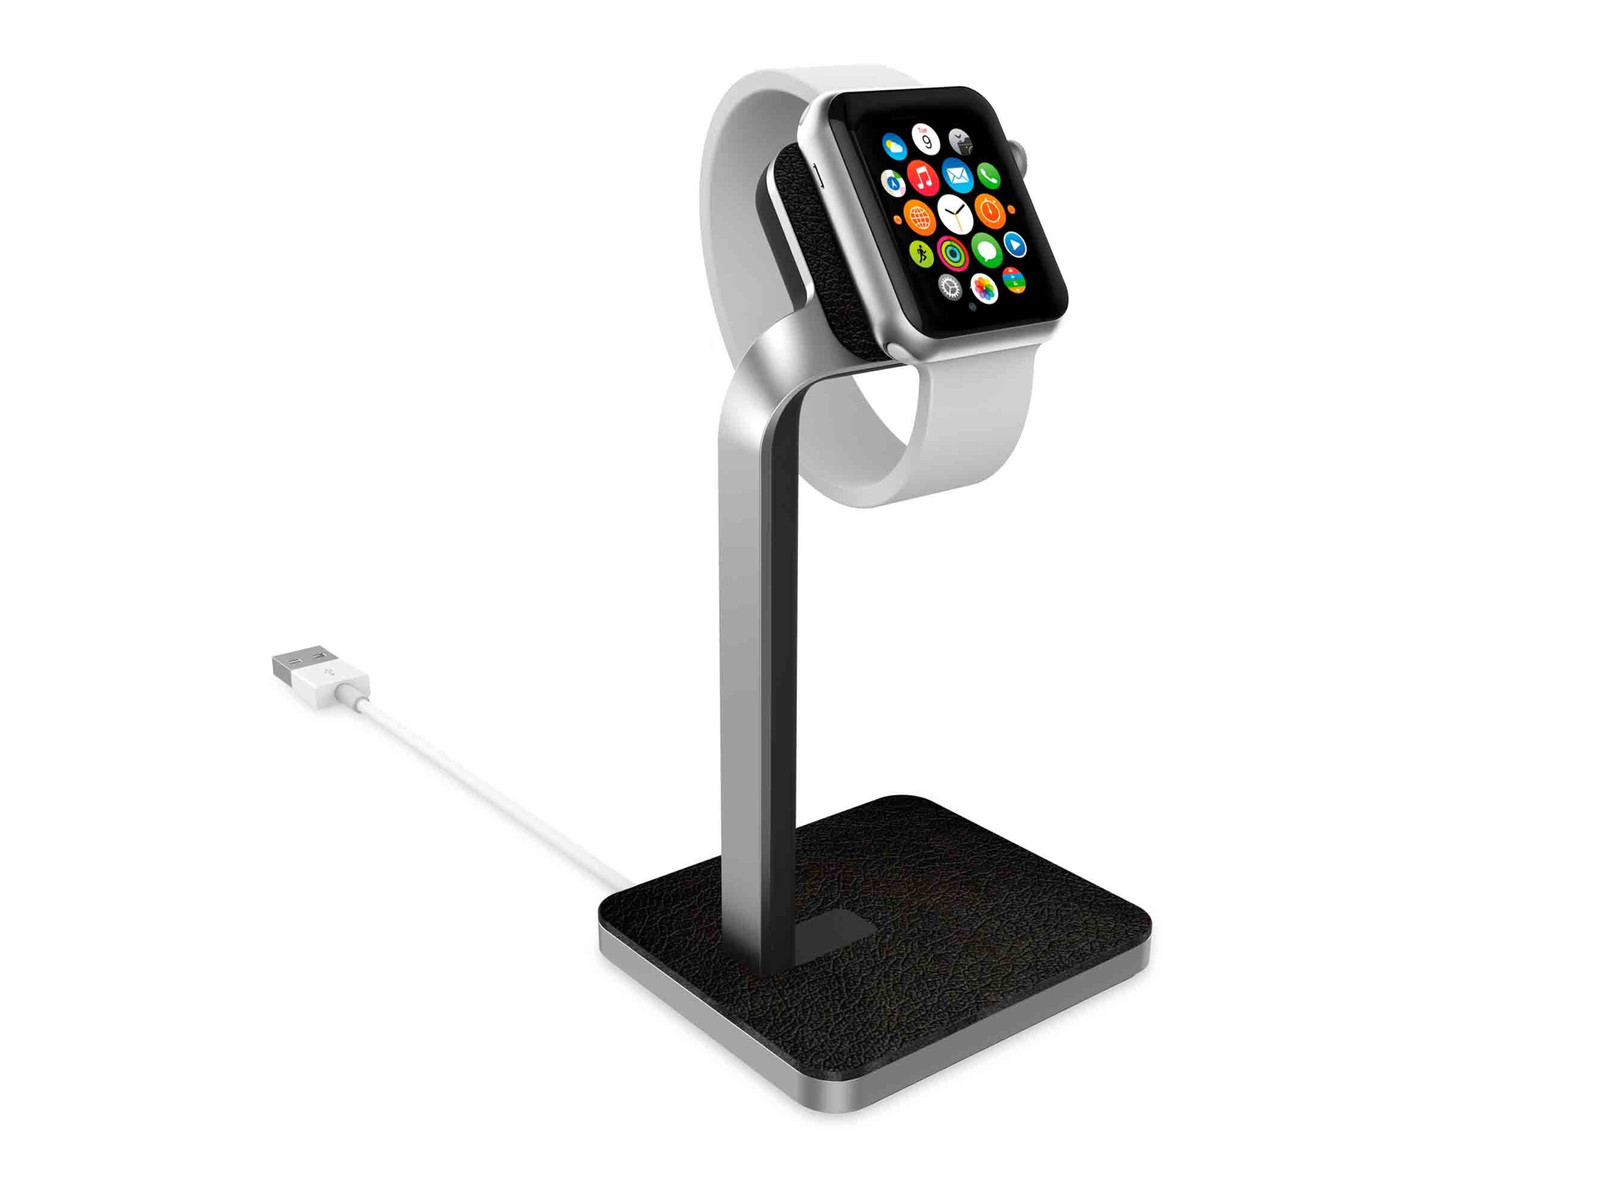 Mophie takes the wraps off of 'Watch Dock' charging stand for Apple Watch